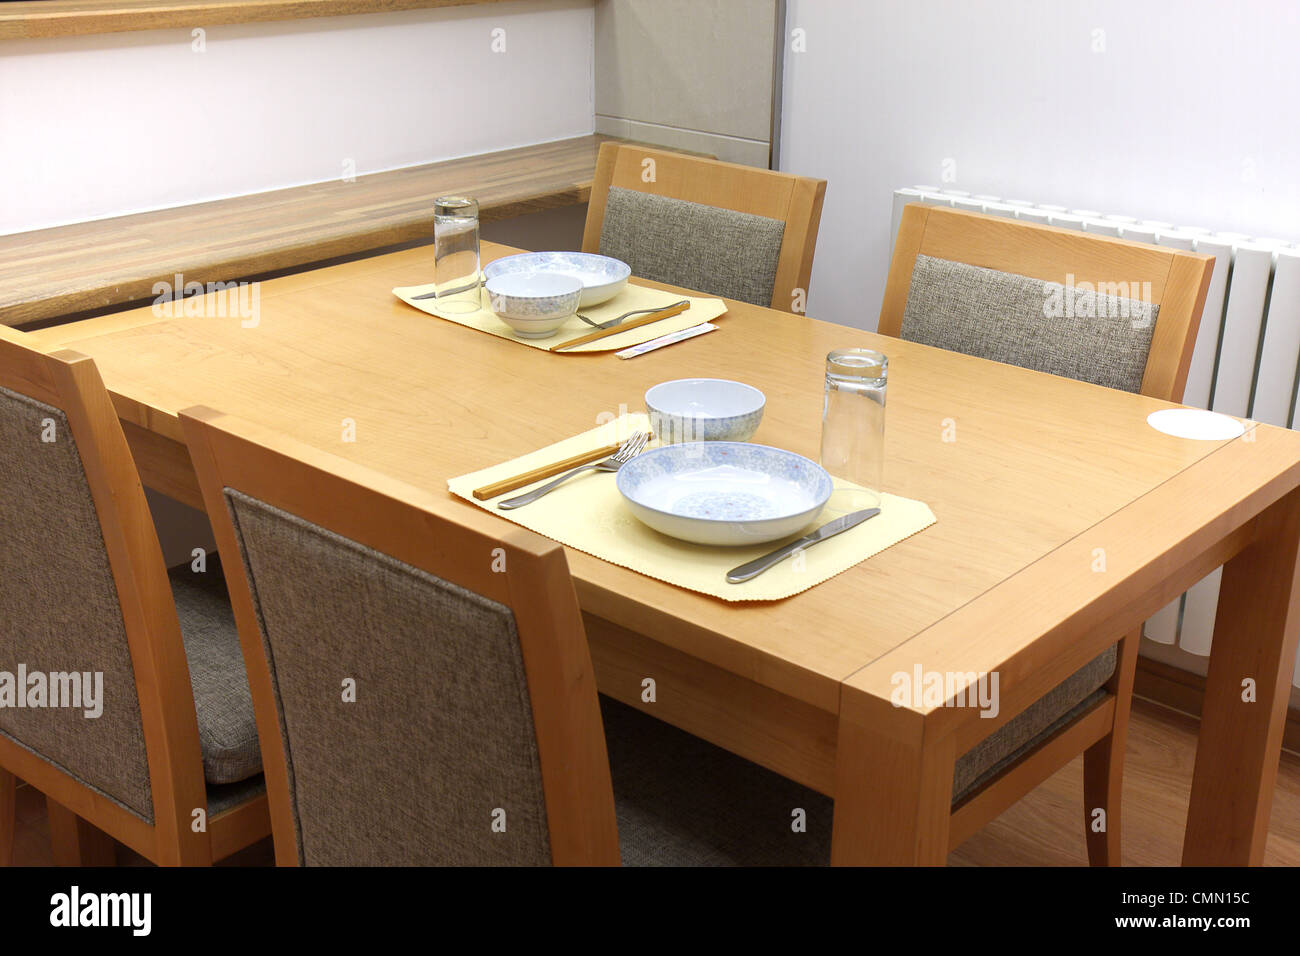 Wooden dining furniture with oriental style utensils. - Stock Image